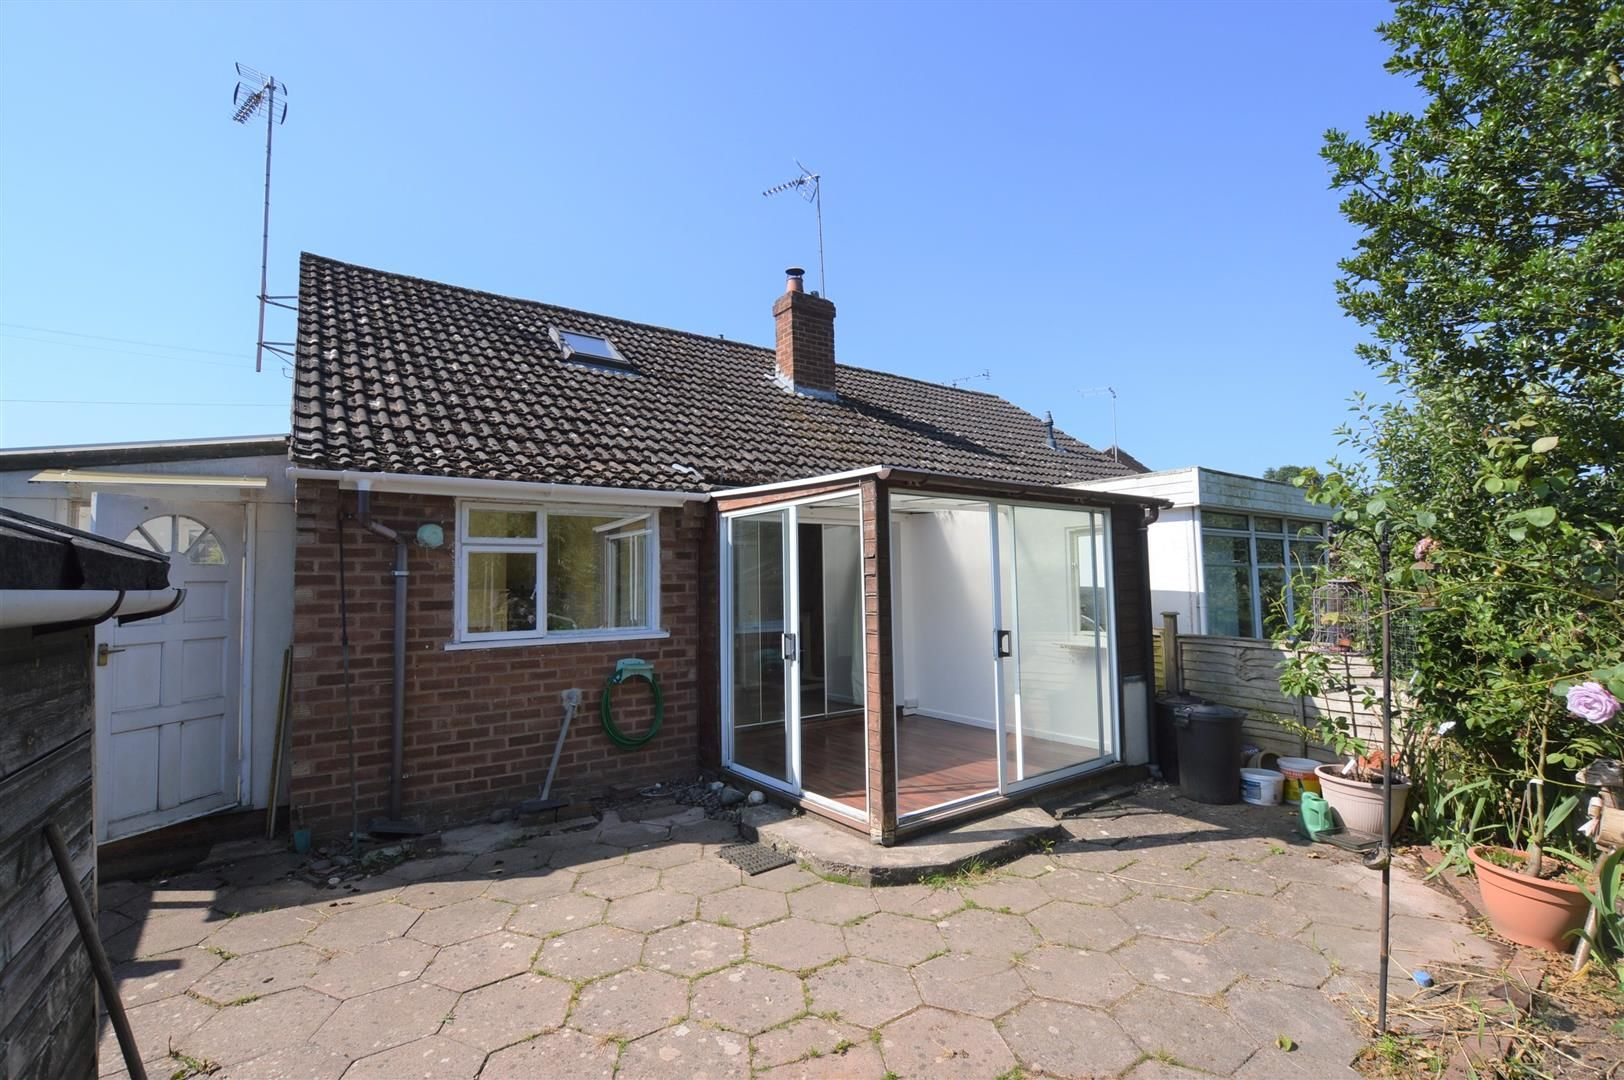 2 bed semi-detached-bungalow for sale in Leominster 14